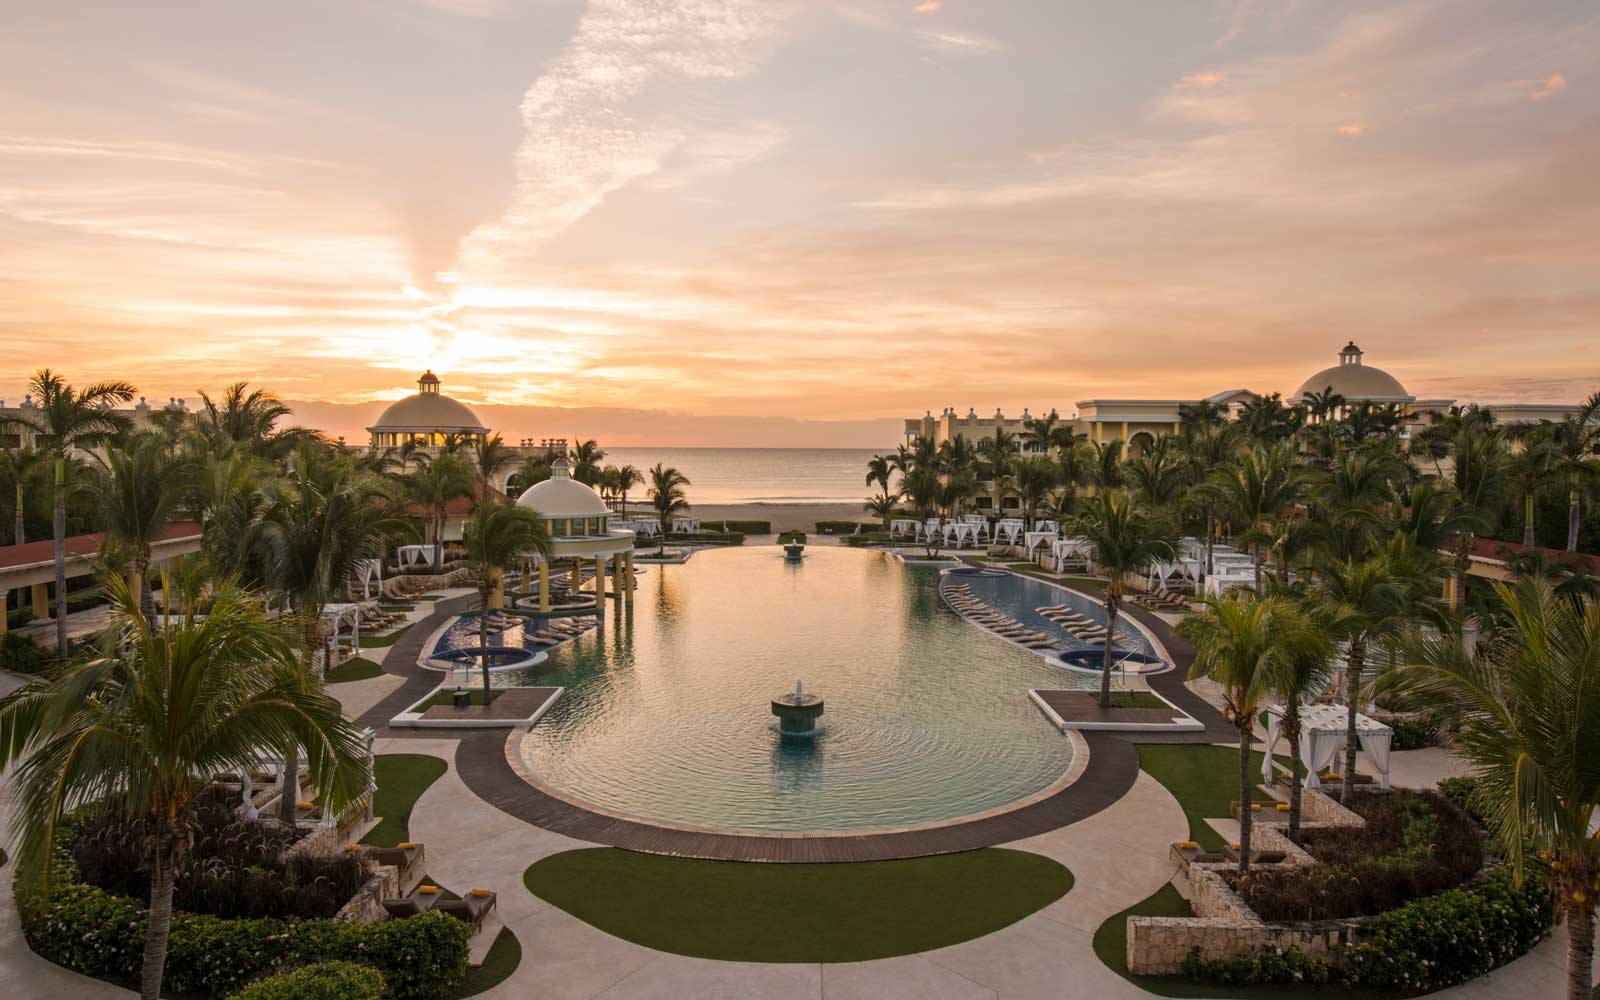 Save 30% on an All-Inclusive Stay at Iberostar Grand Paraiso in Mexico's Riviera Maya